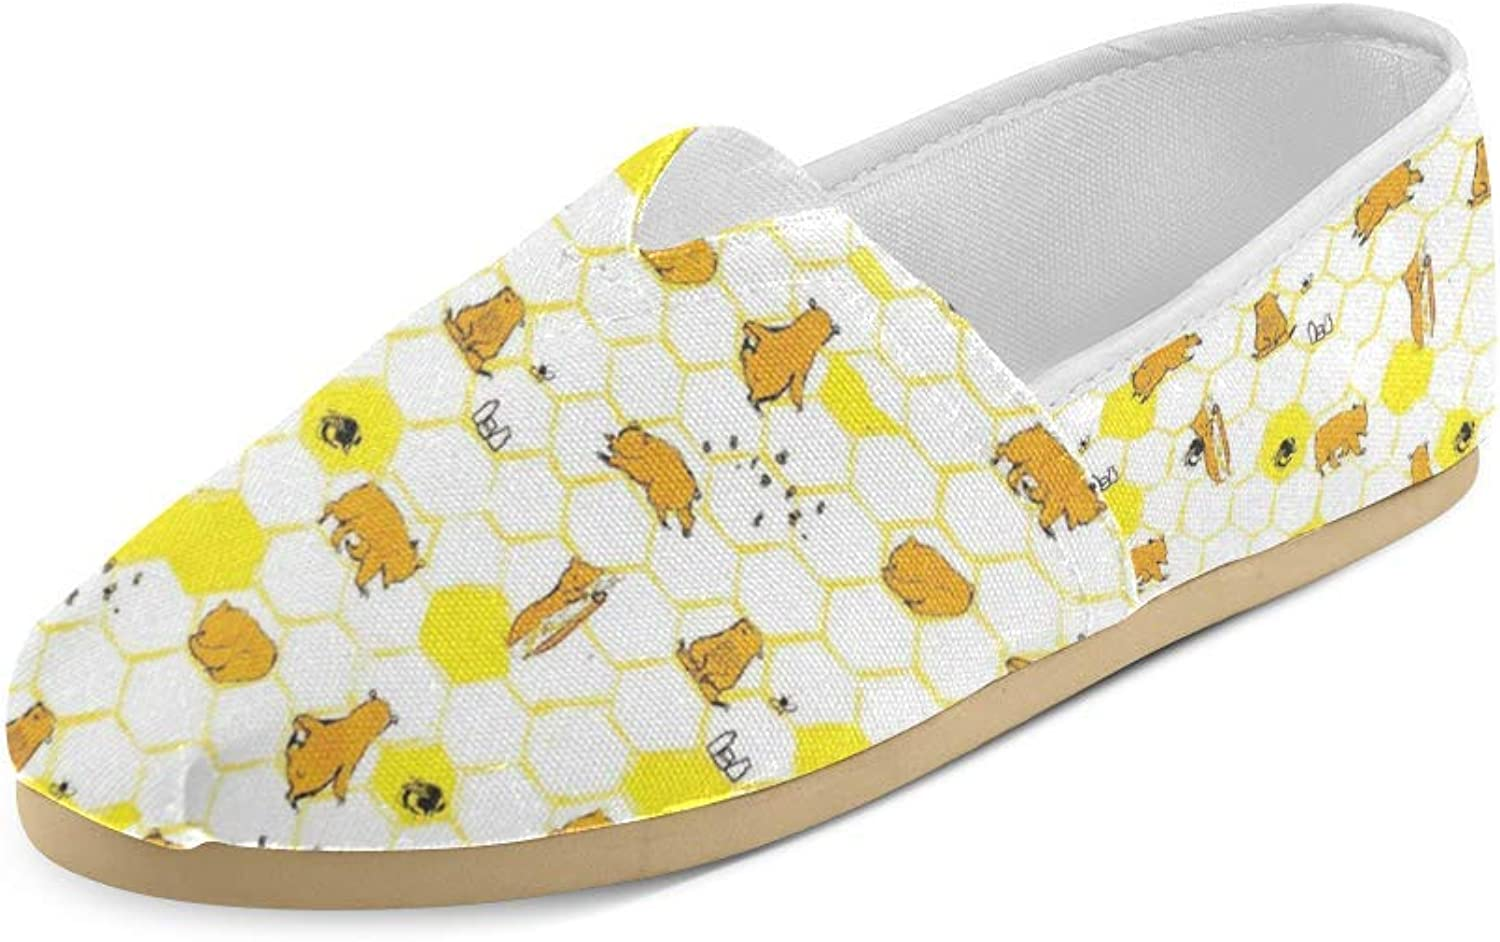 HUANGDAISY Unisex shoes Bear and Honey Casual Canvas Loafers for Bia Kids Girl Or Men